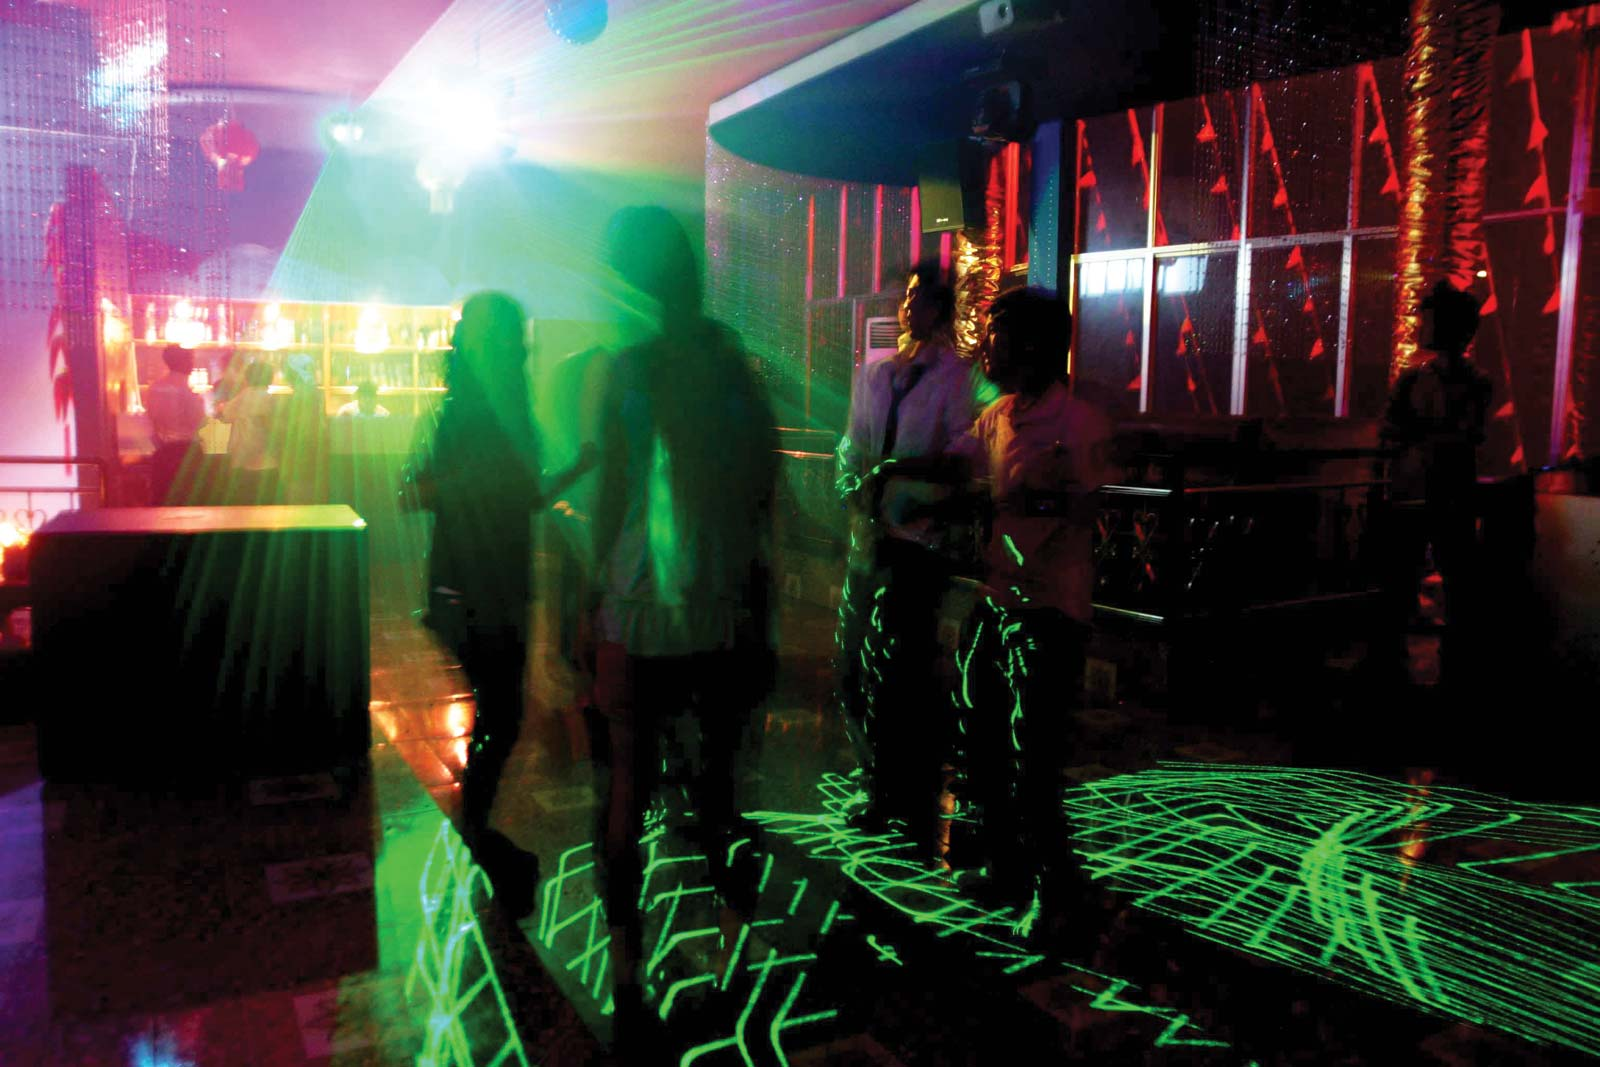 Panghsang's Babe nightclub offers an incongruous glimpse of glamour. Photo: Torgeir Norling